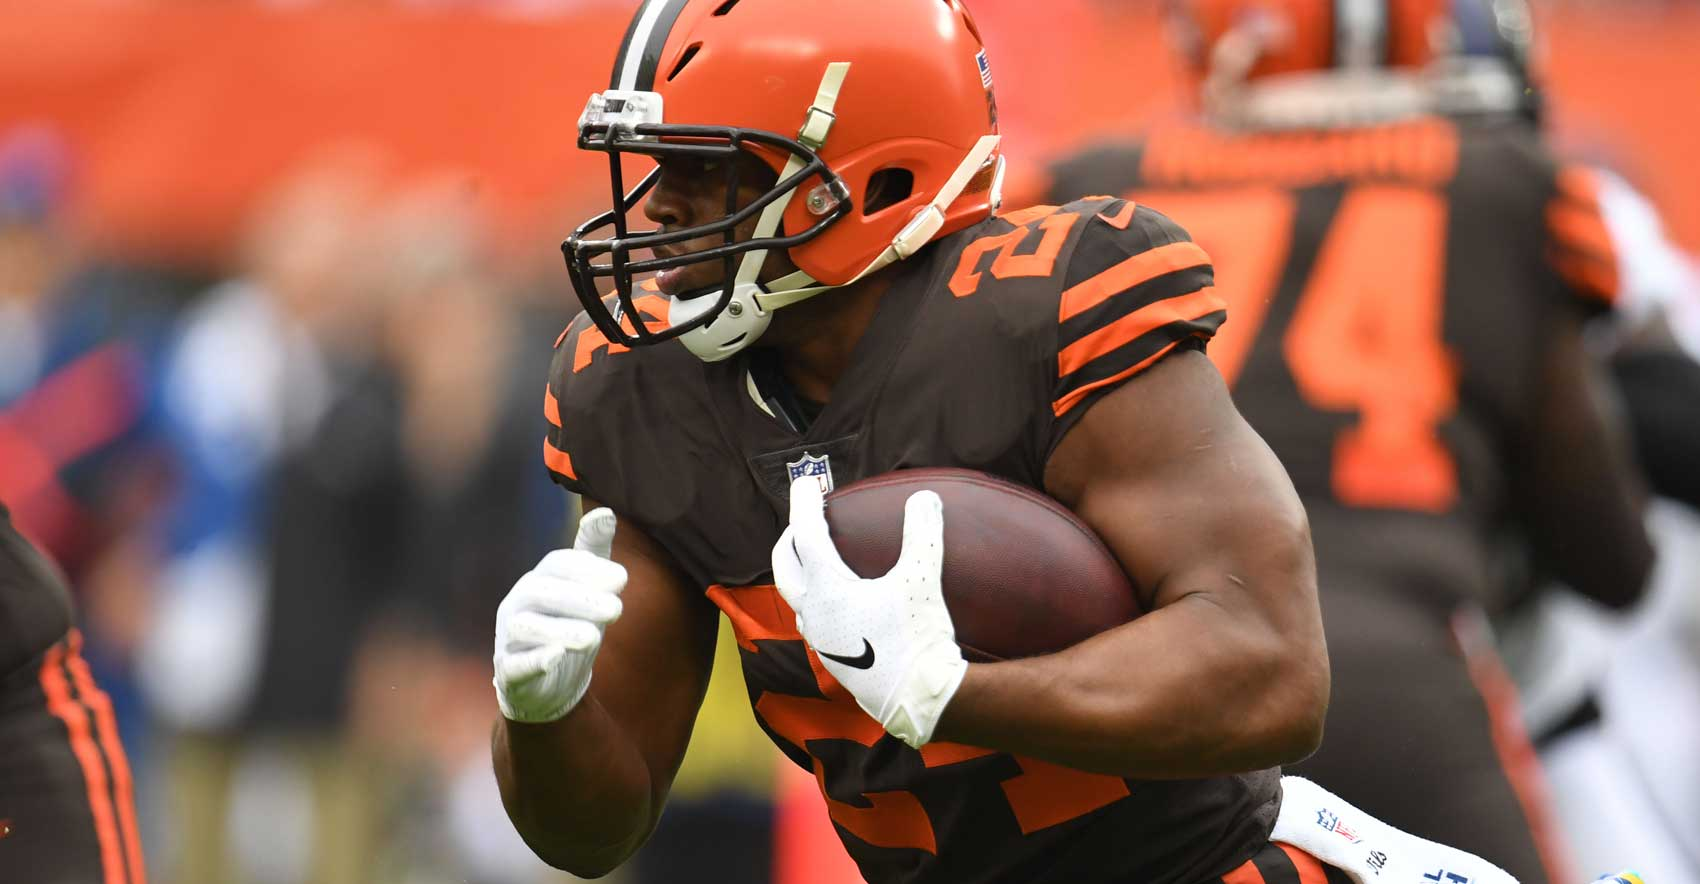 Fantasy Football: Start/Sit Decisions for Week 7